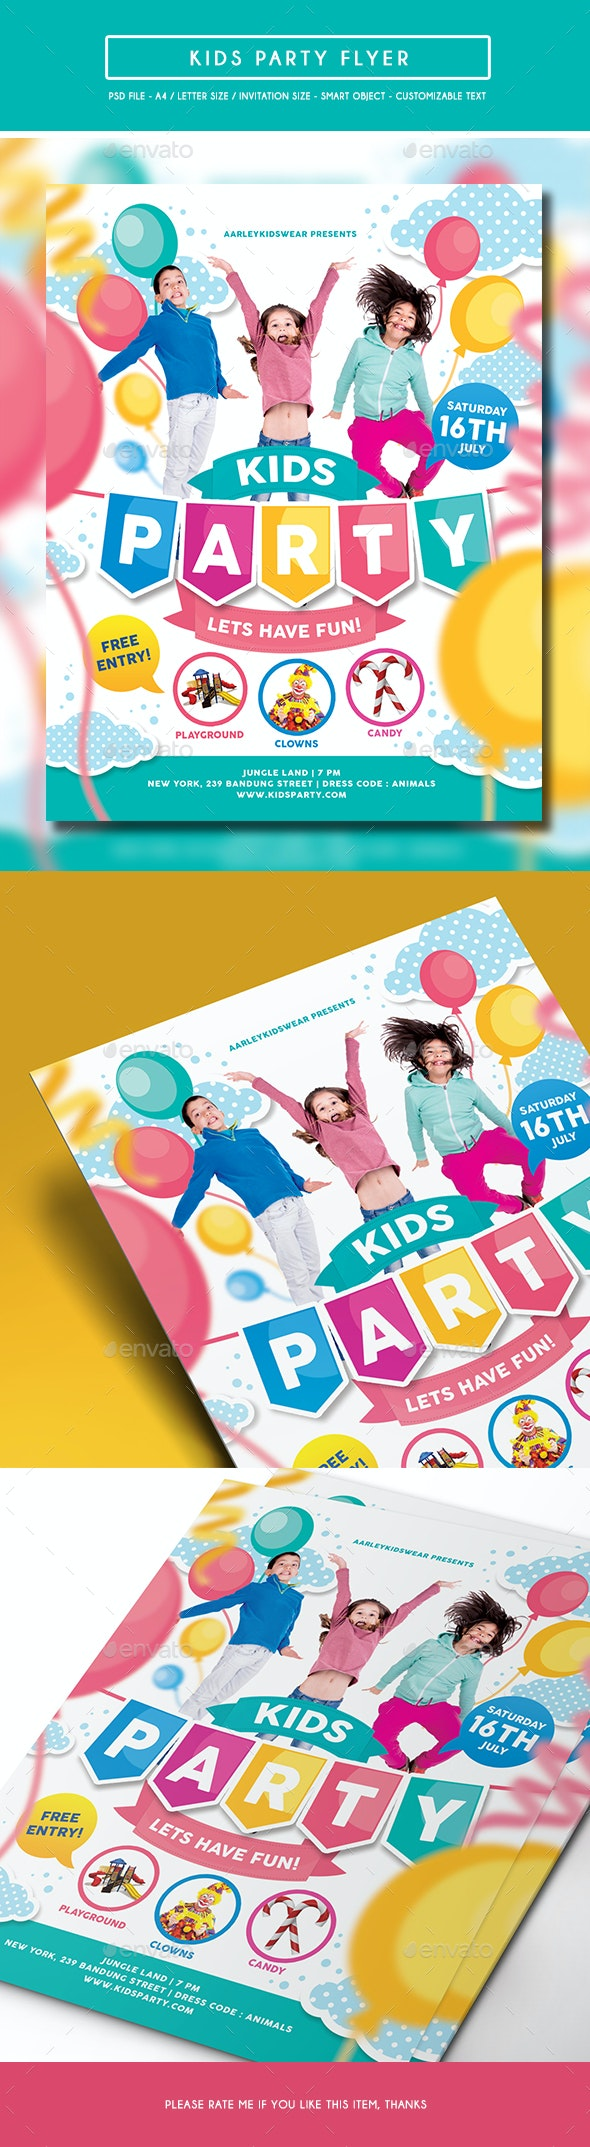 Kids Party Flyer / Invitation - Clubs & Parties Events